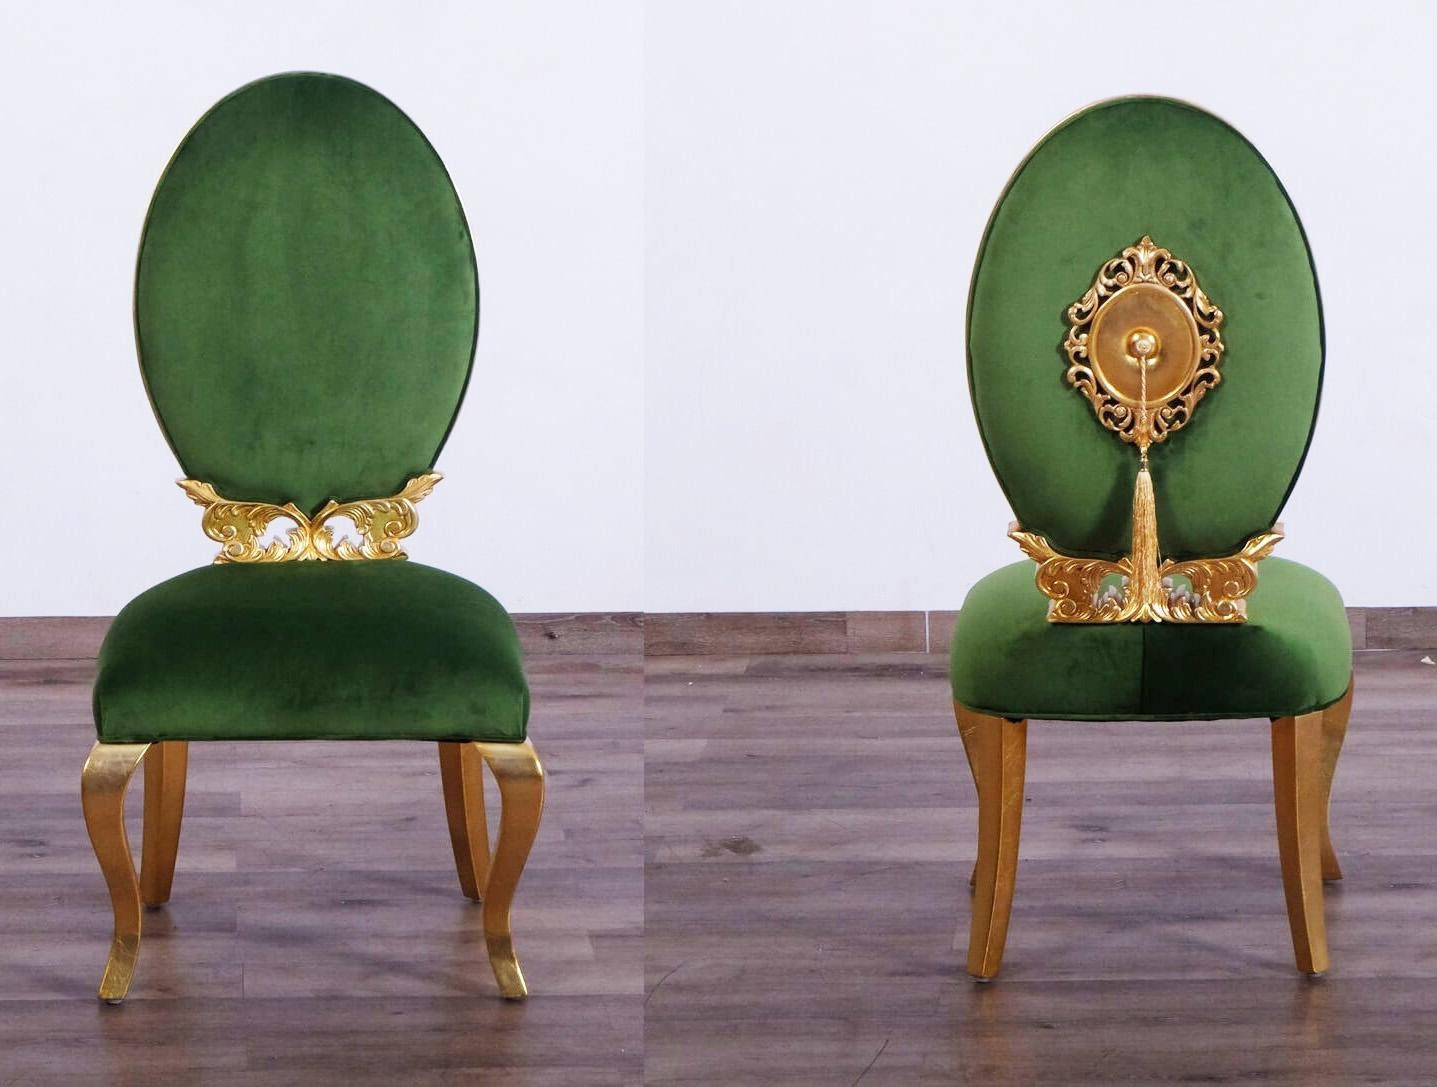 Contemporary, Modern Emerald, Gold Velvet and Wood, Solid Hardwood Dining Chair Set 2 pcs LUXOR  by European Furniture